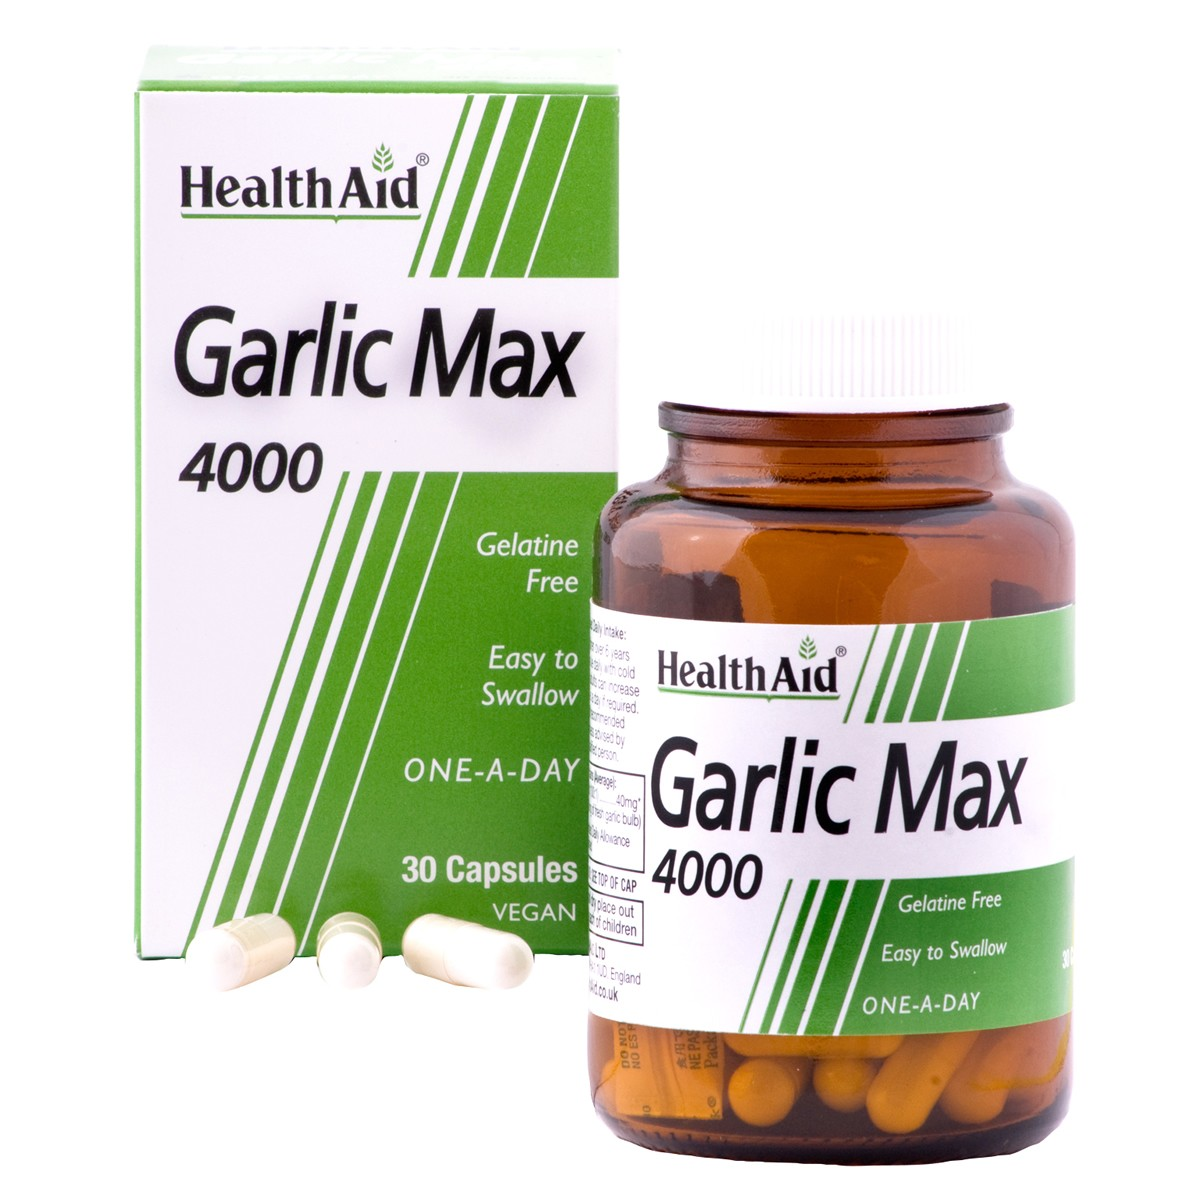 HealthAid Garlic Max 4000 Vegicaps